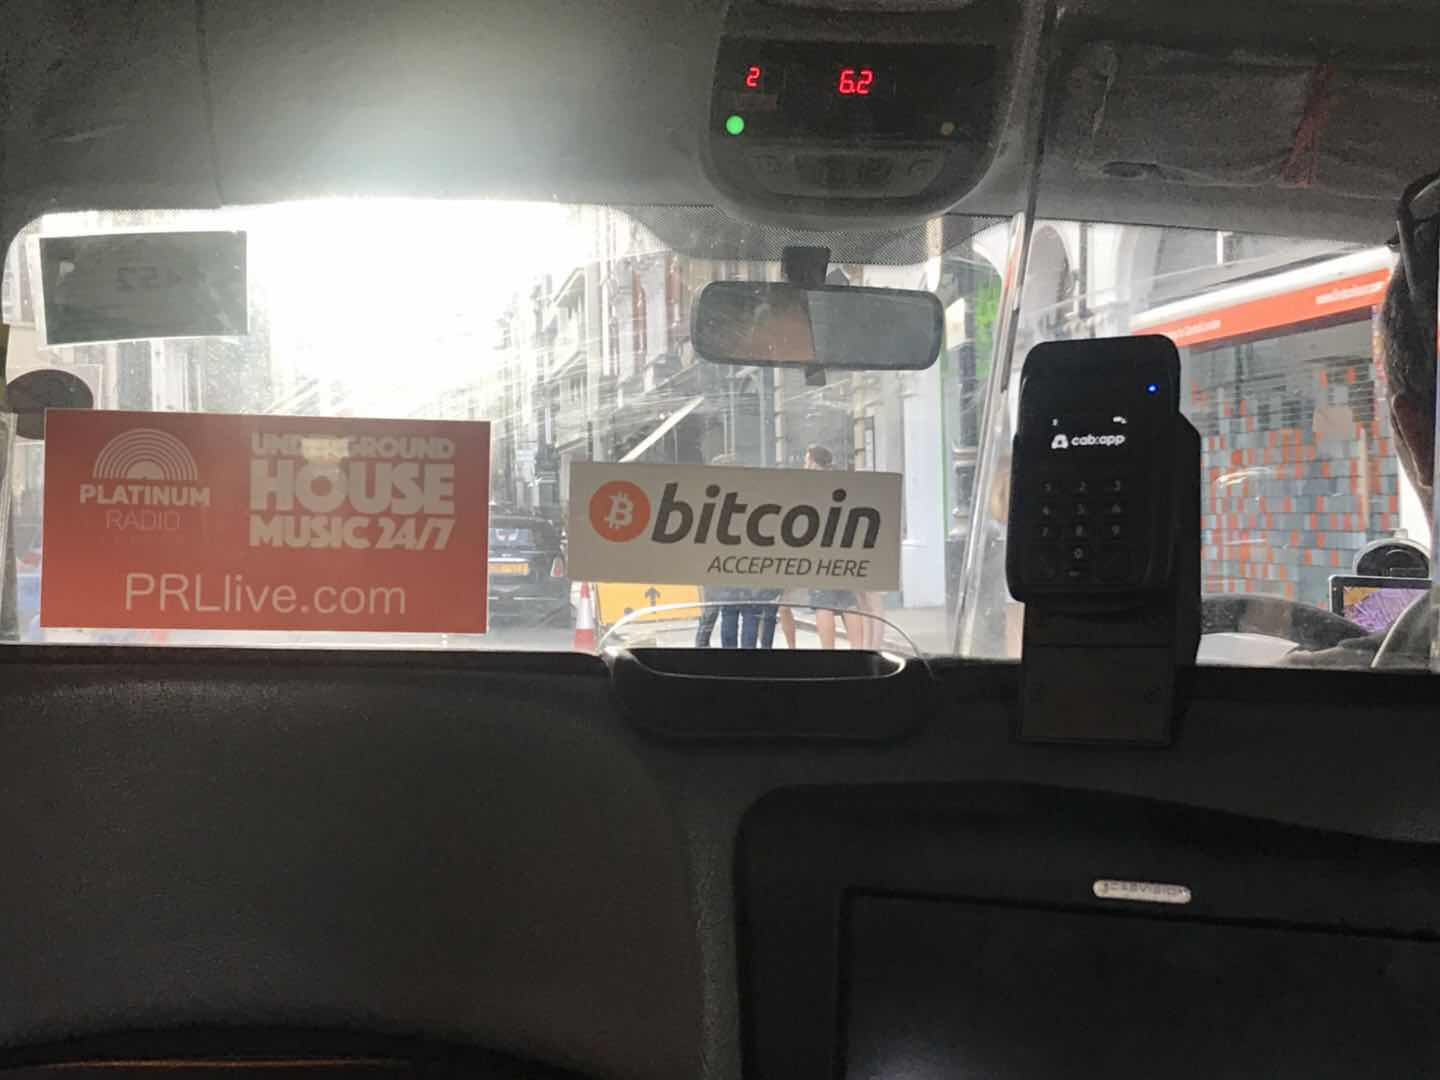 London Taxi accepting Bitcoin